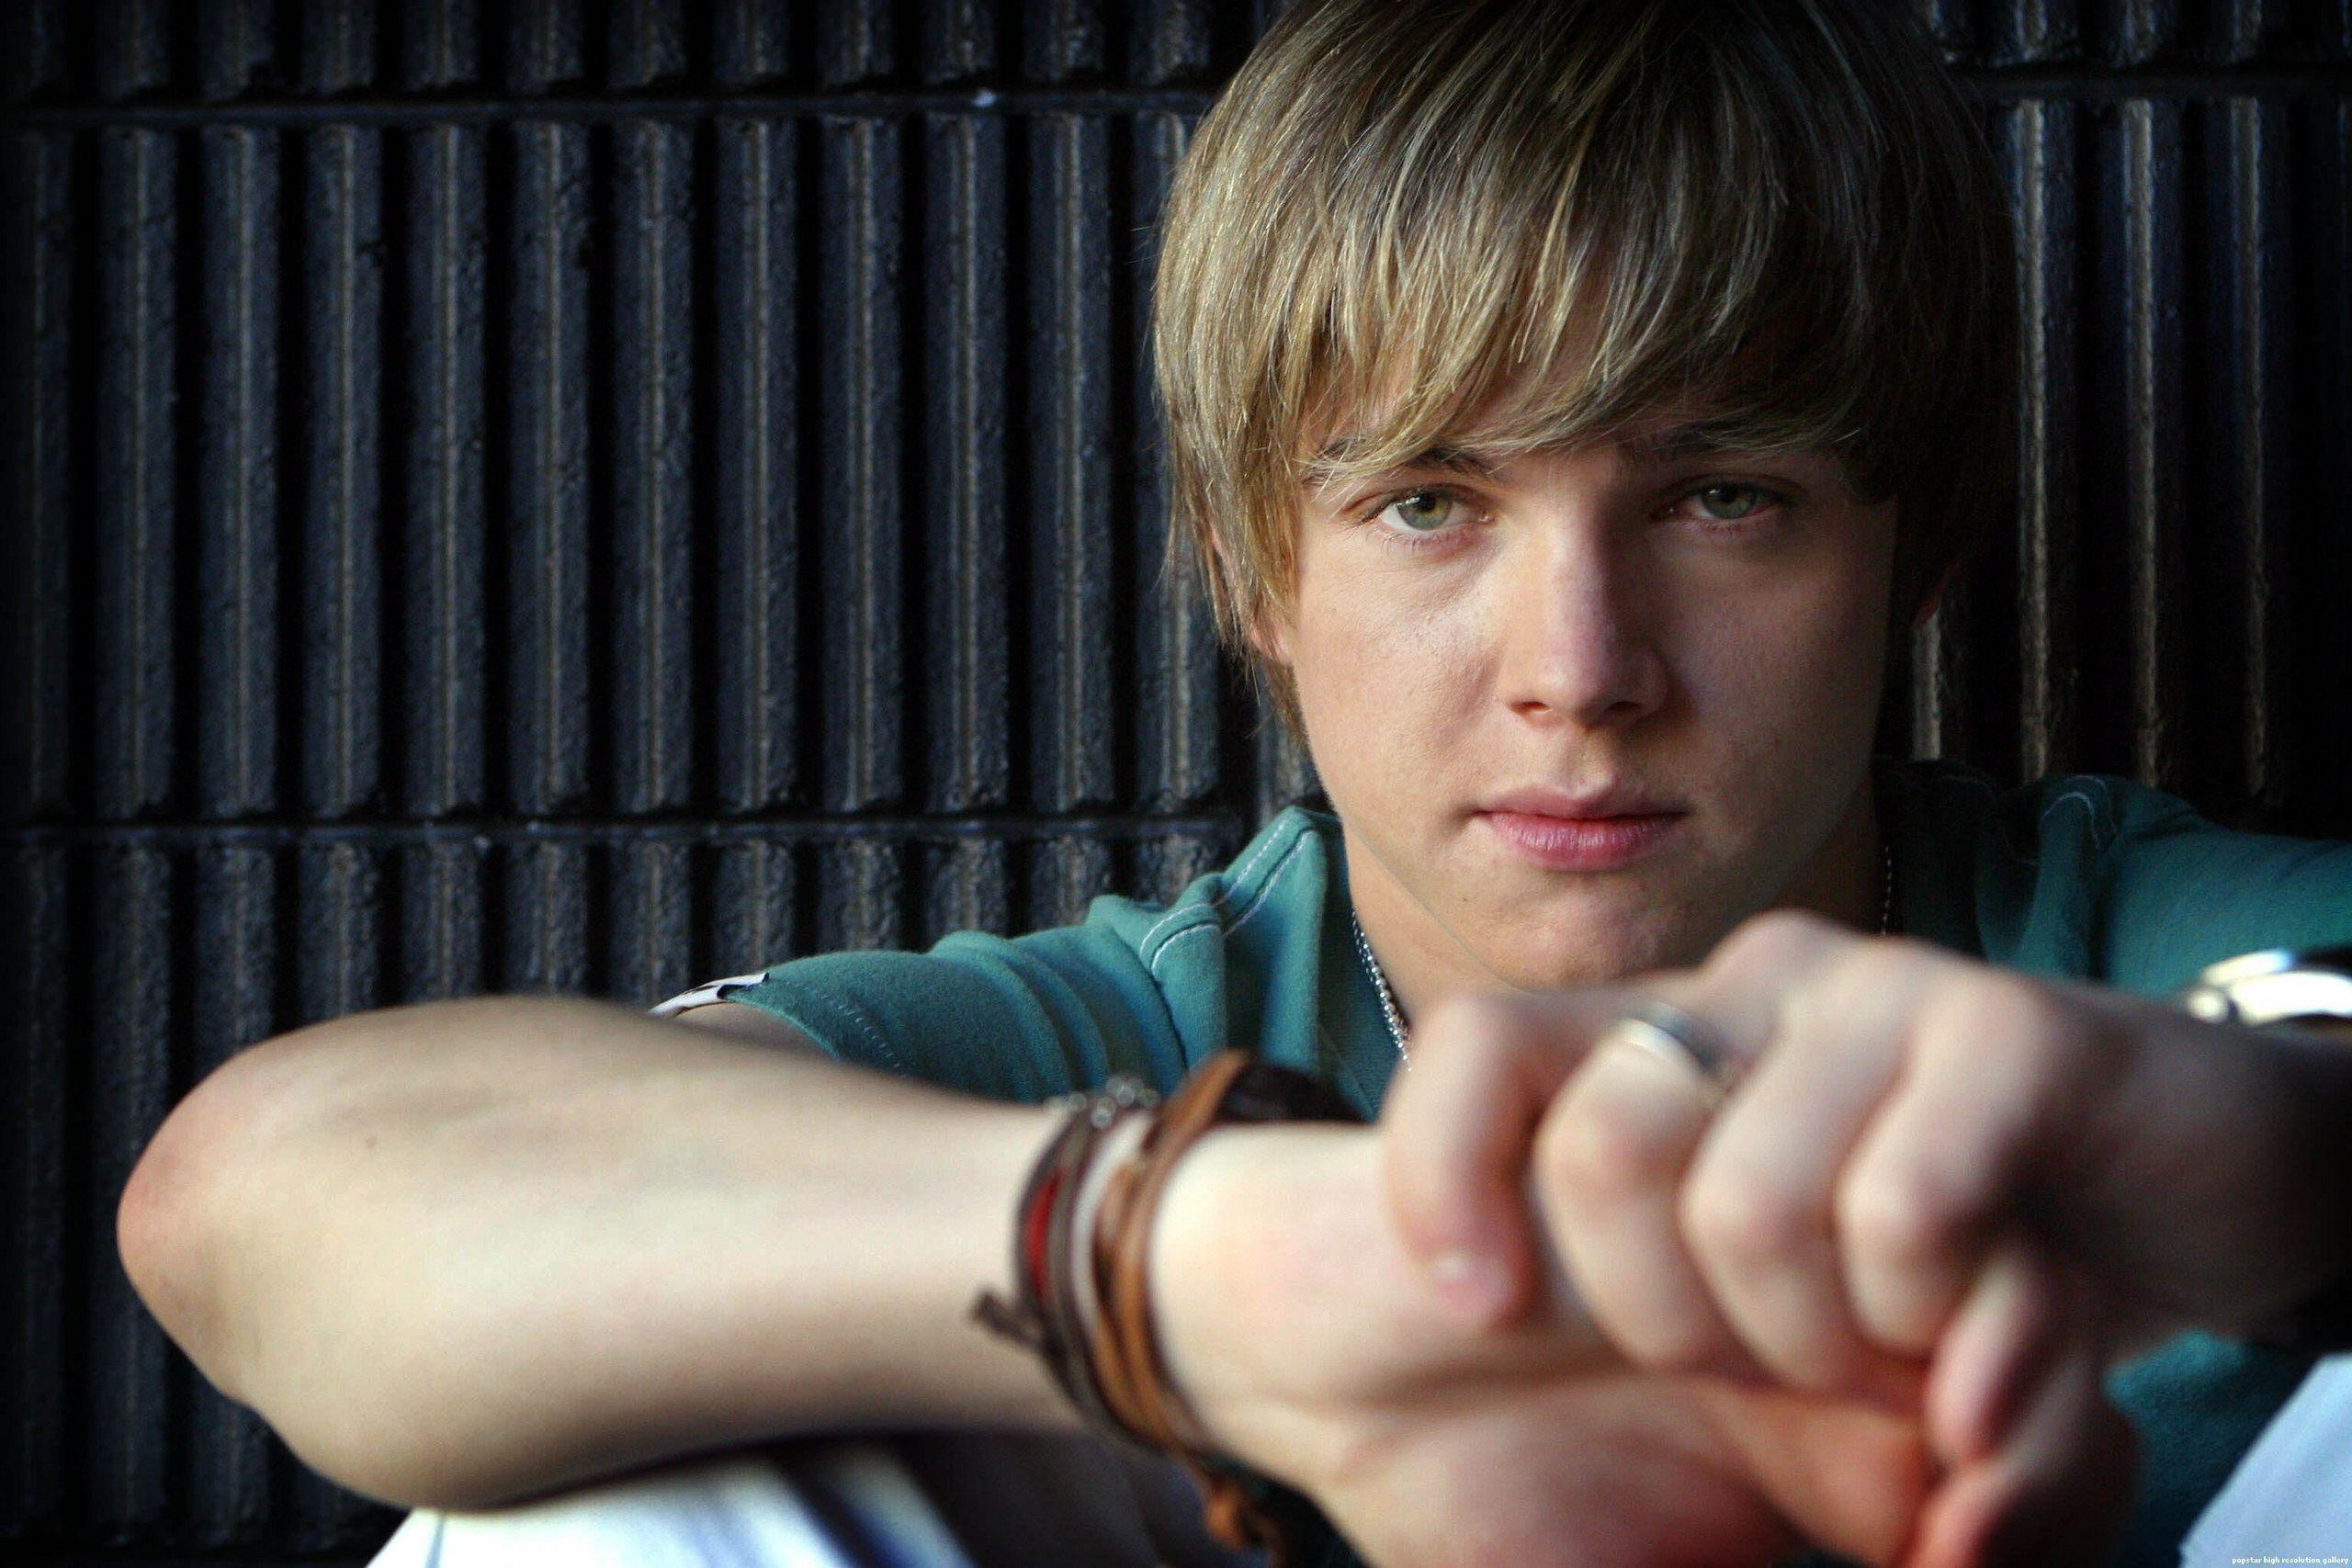 2560x1707 Jesse Jesse Mccartney 18383390 2560 1707 HD Wallpaper and Pictures